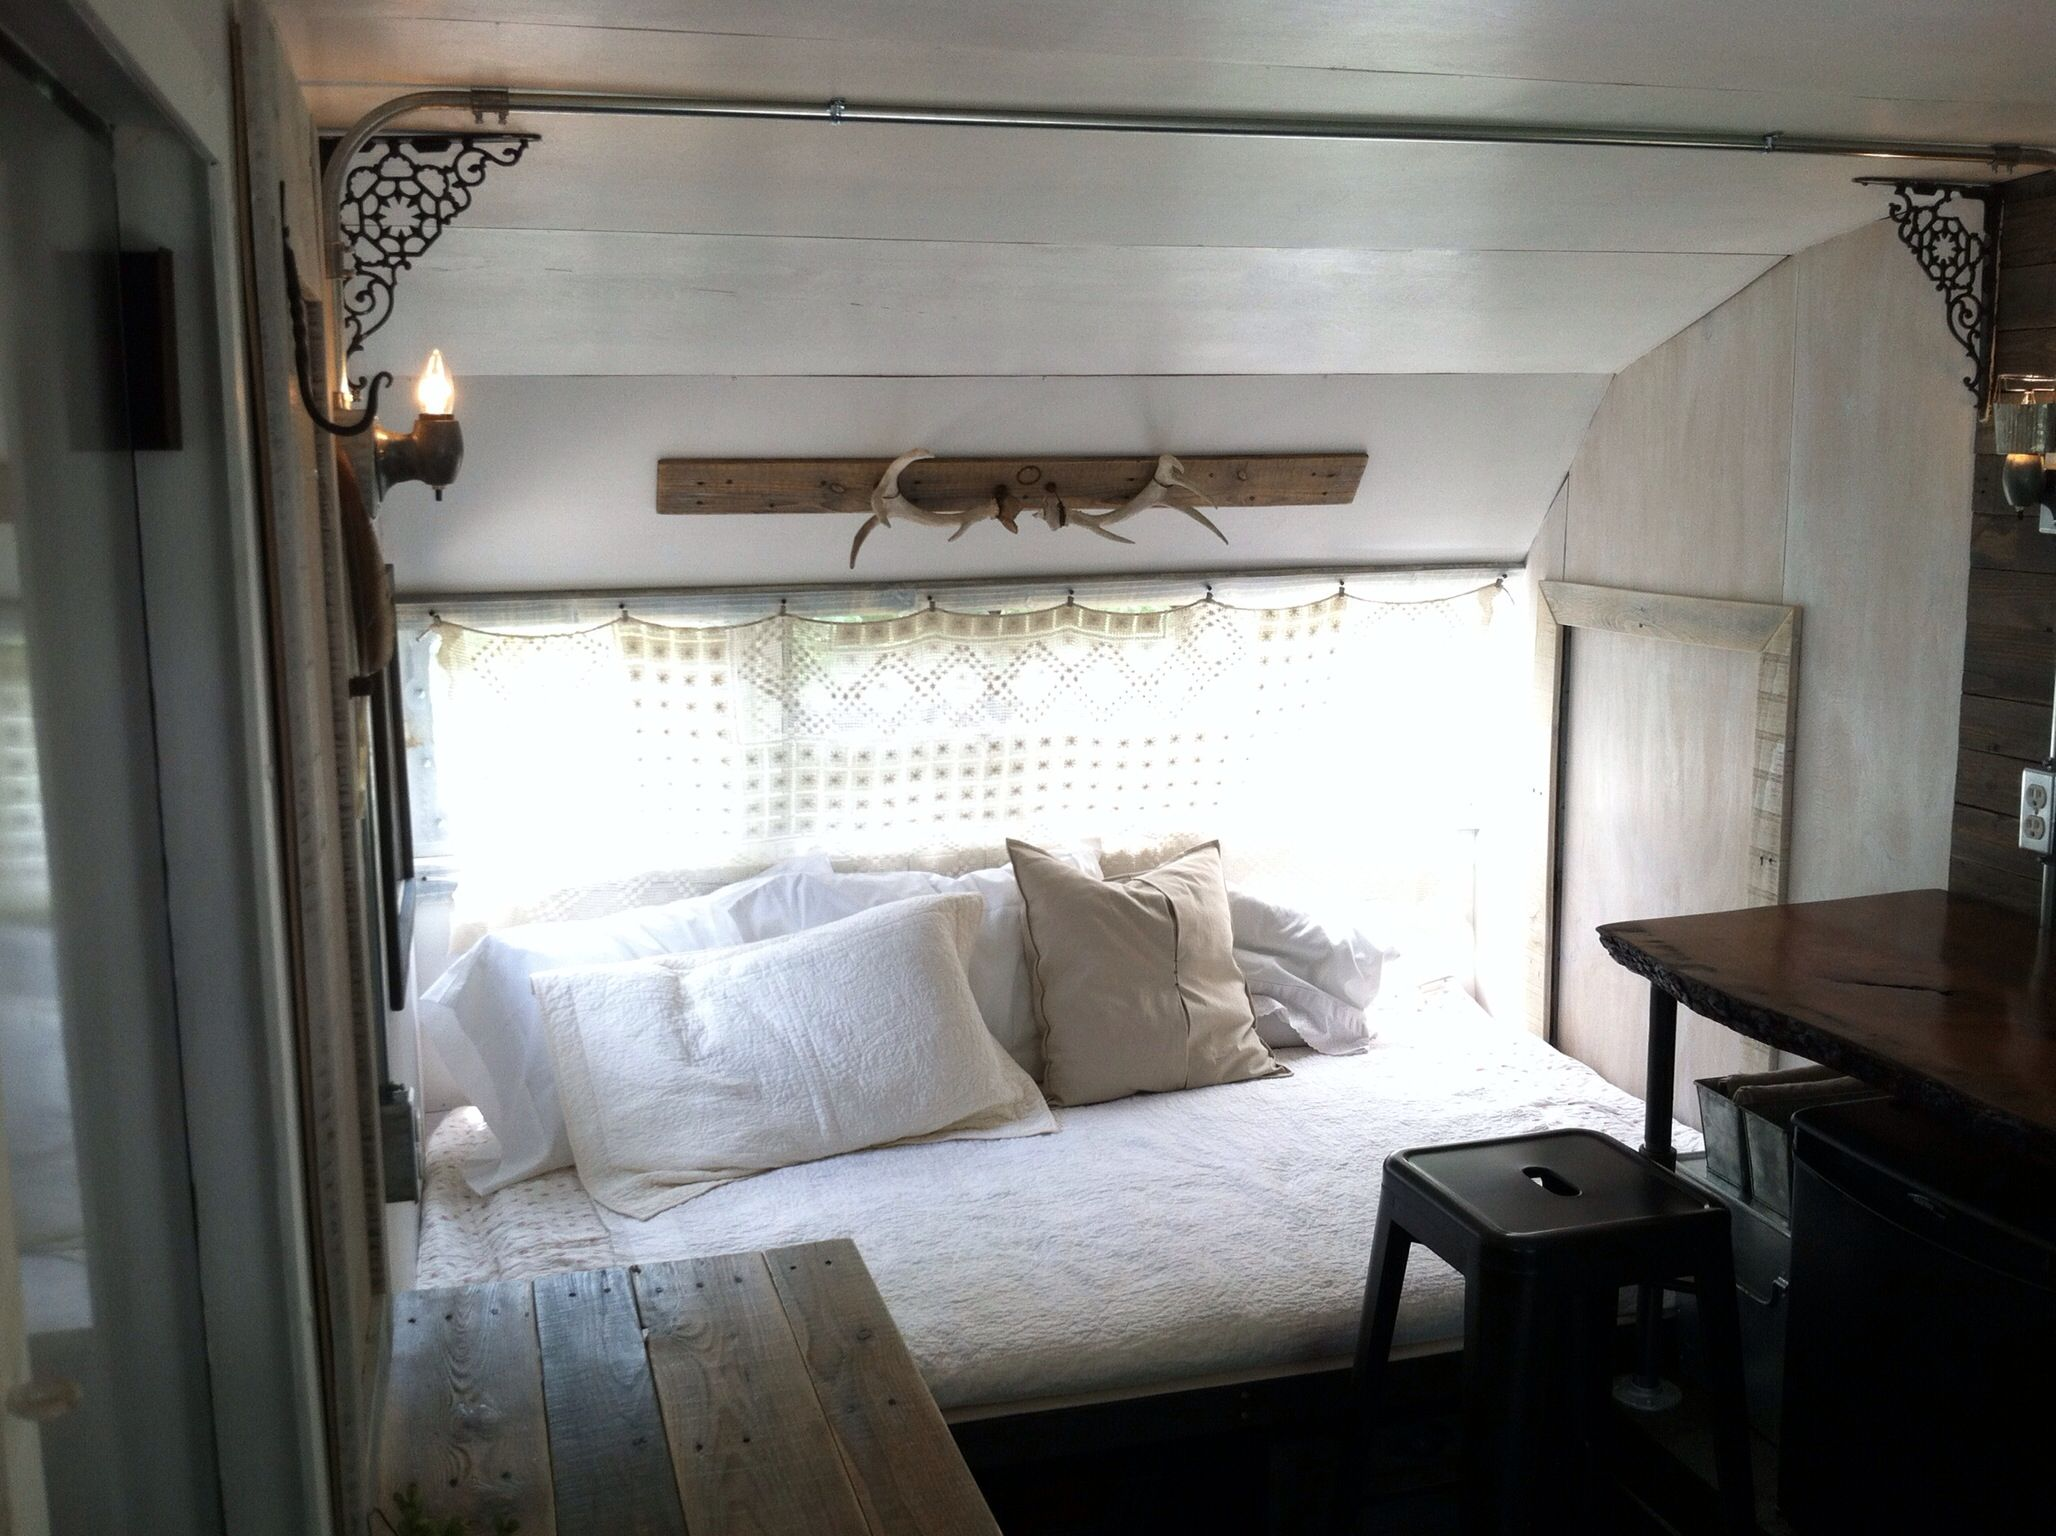 Vintage camper interior renovation rustic industrial chic